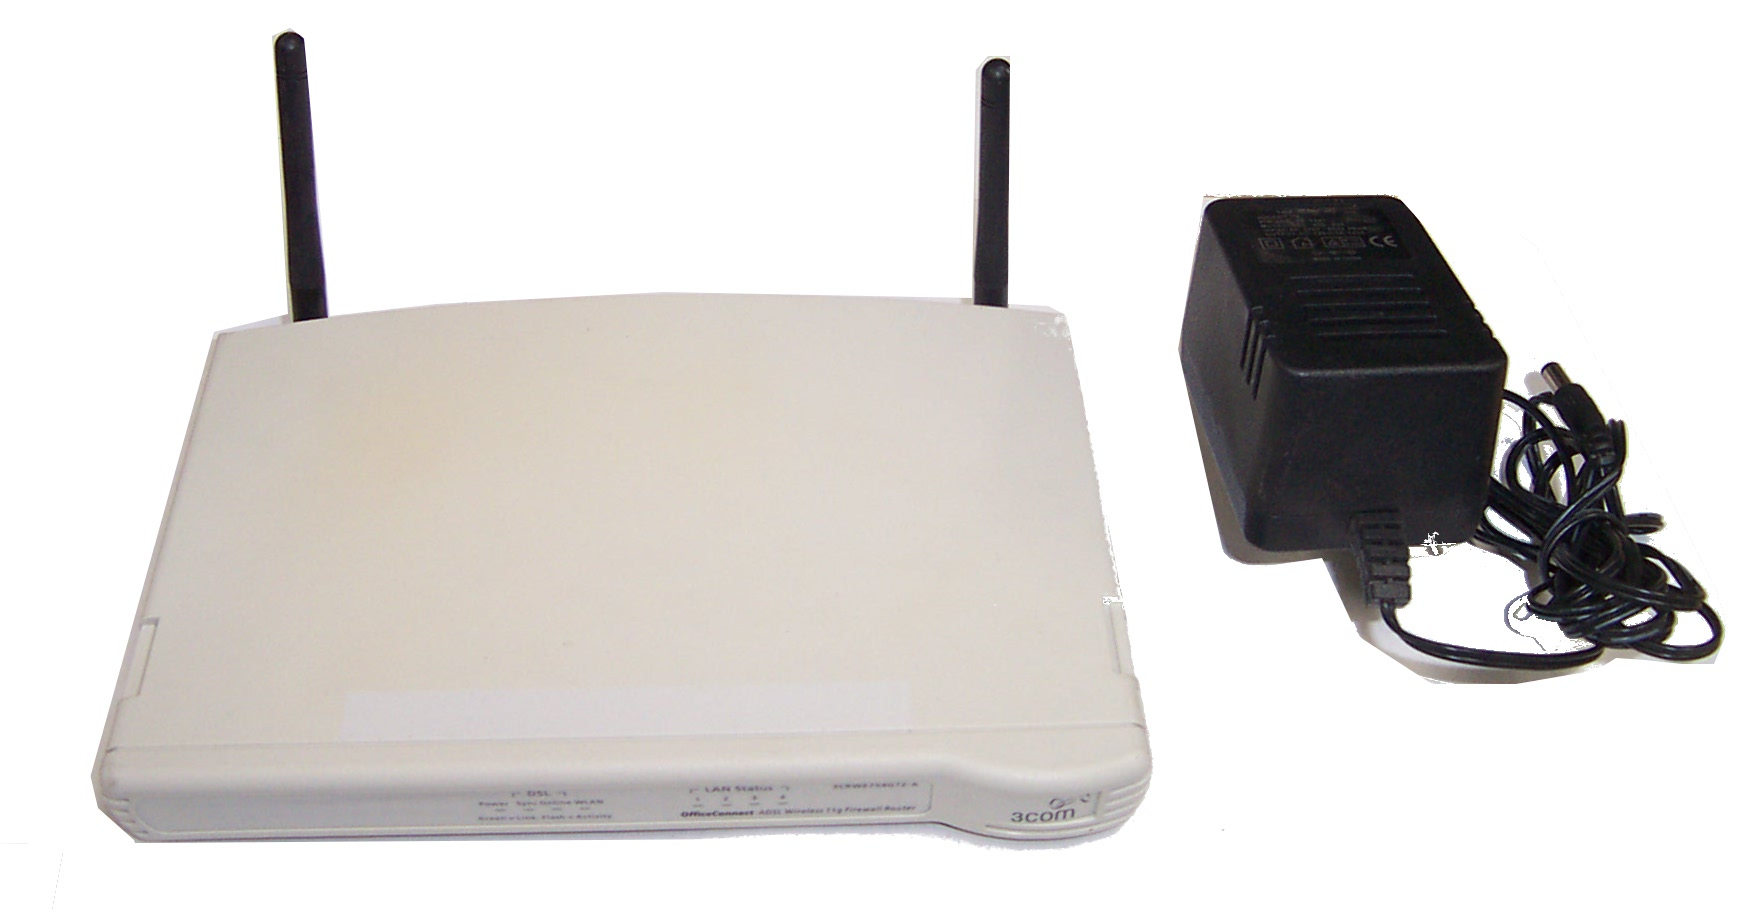 3Com 3CRWE754G72-A Model WL-540A ADSL Wireless Router Enlarged Preview